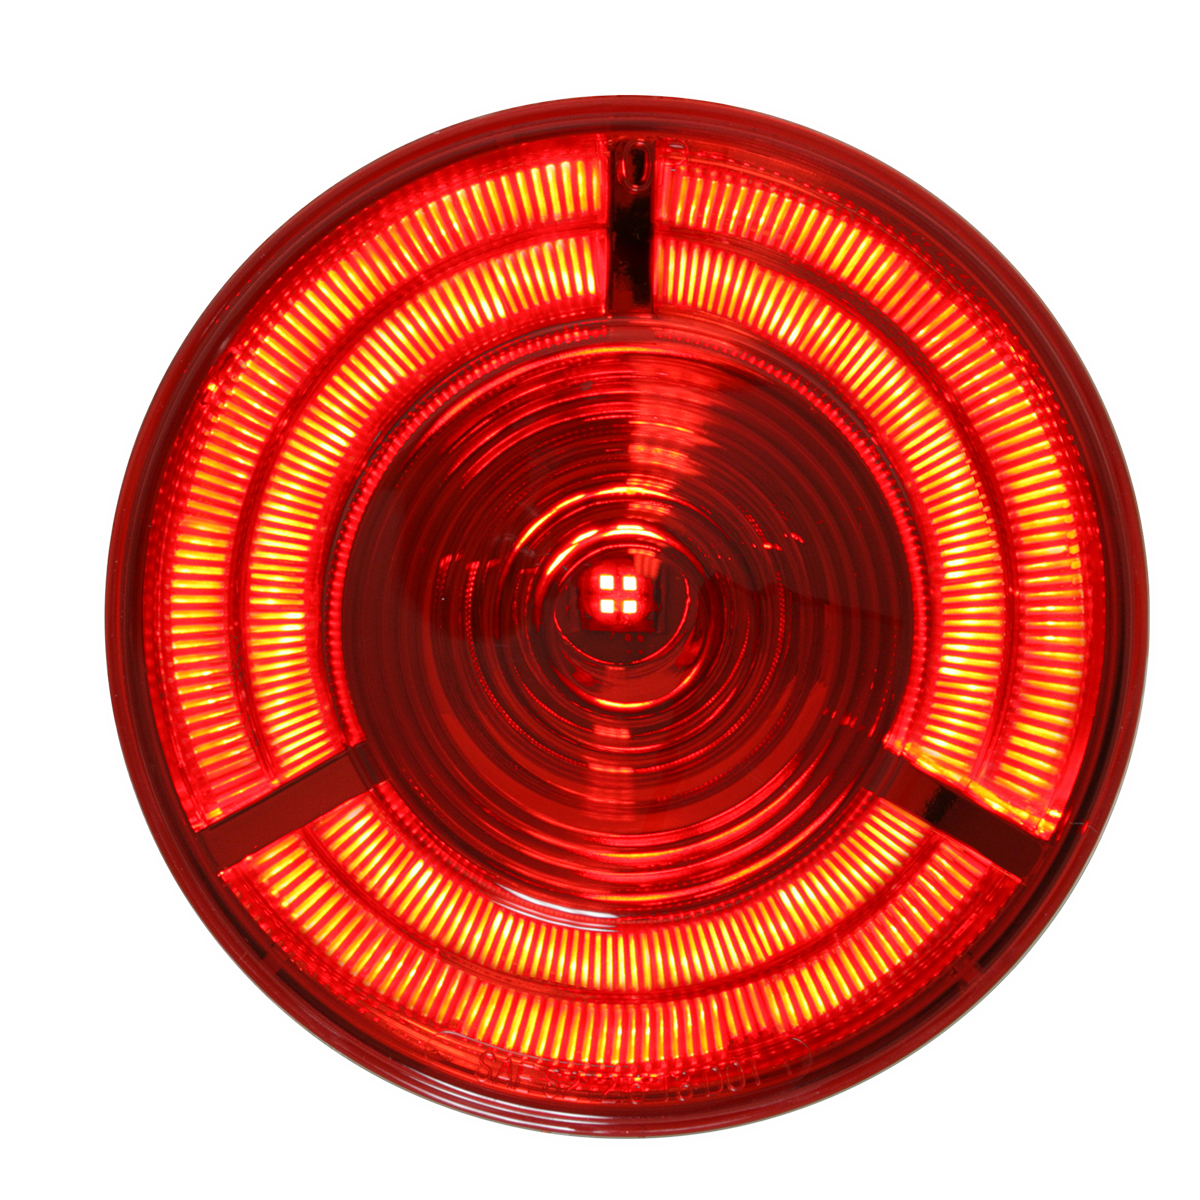 "74880 4"" Prime LED Light in Red/Red"